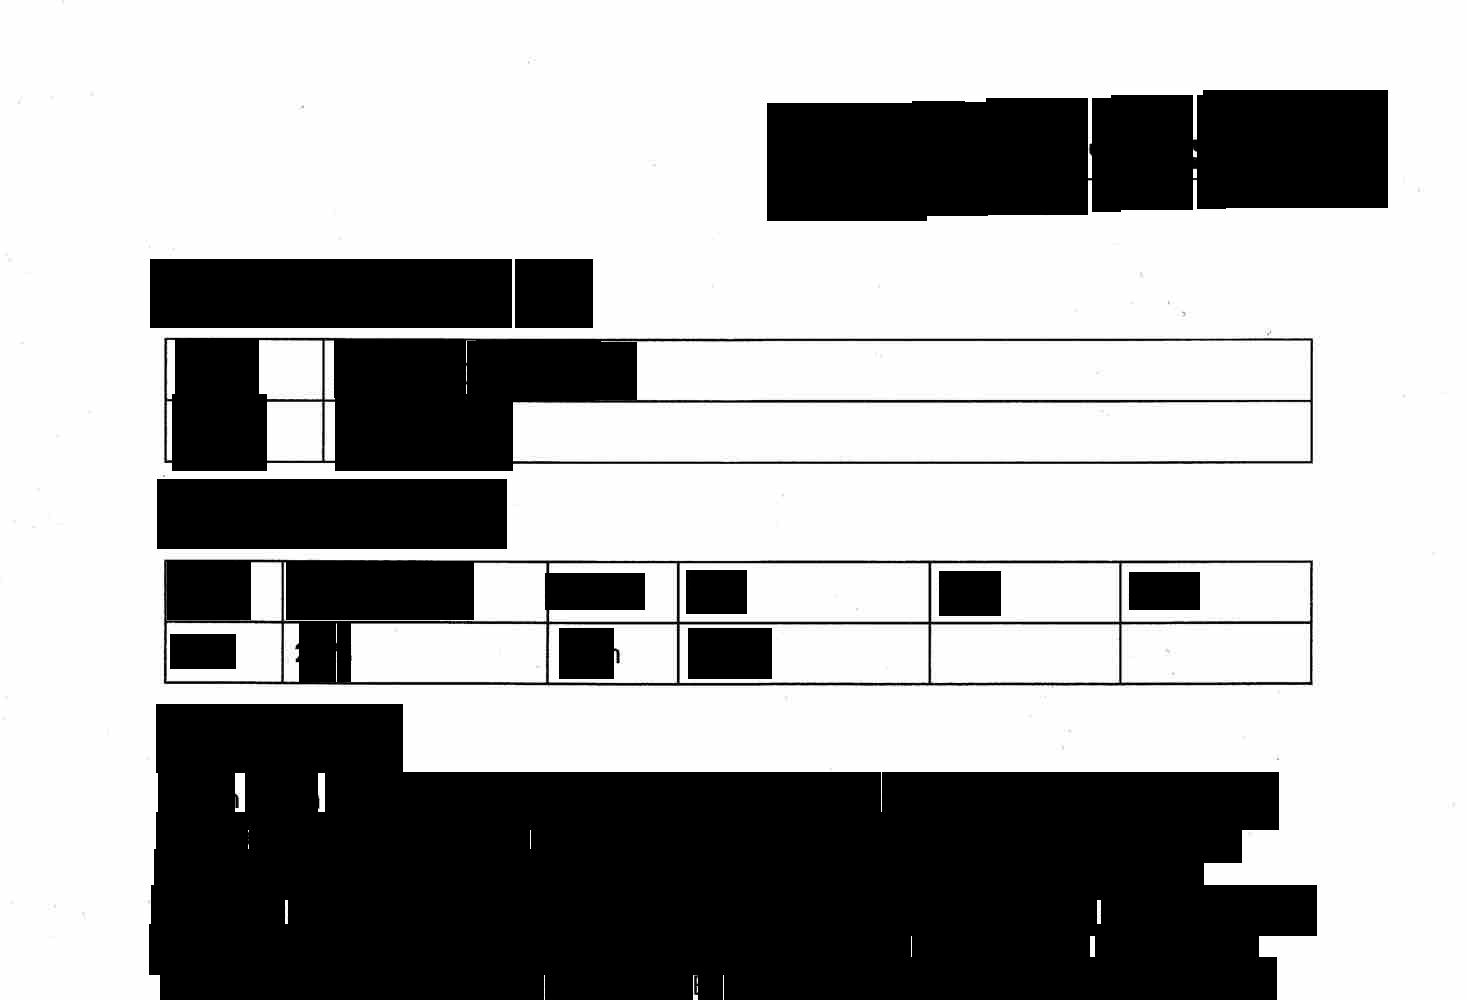 Redacted image, all text (click to enlarge)